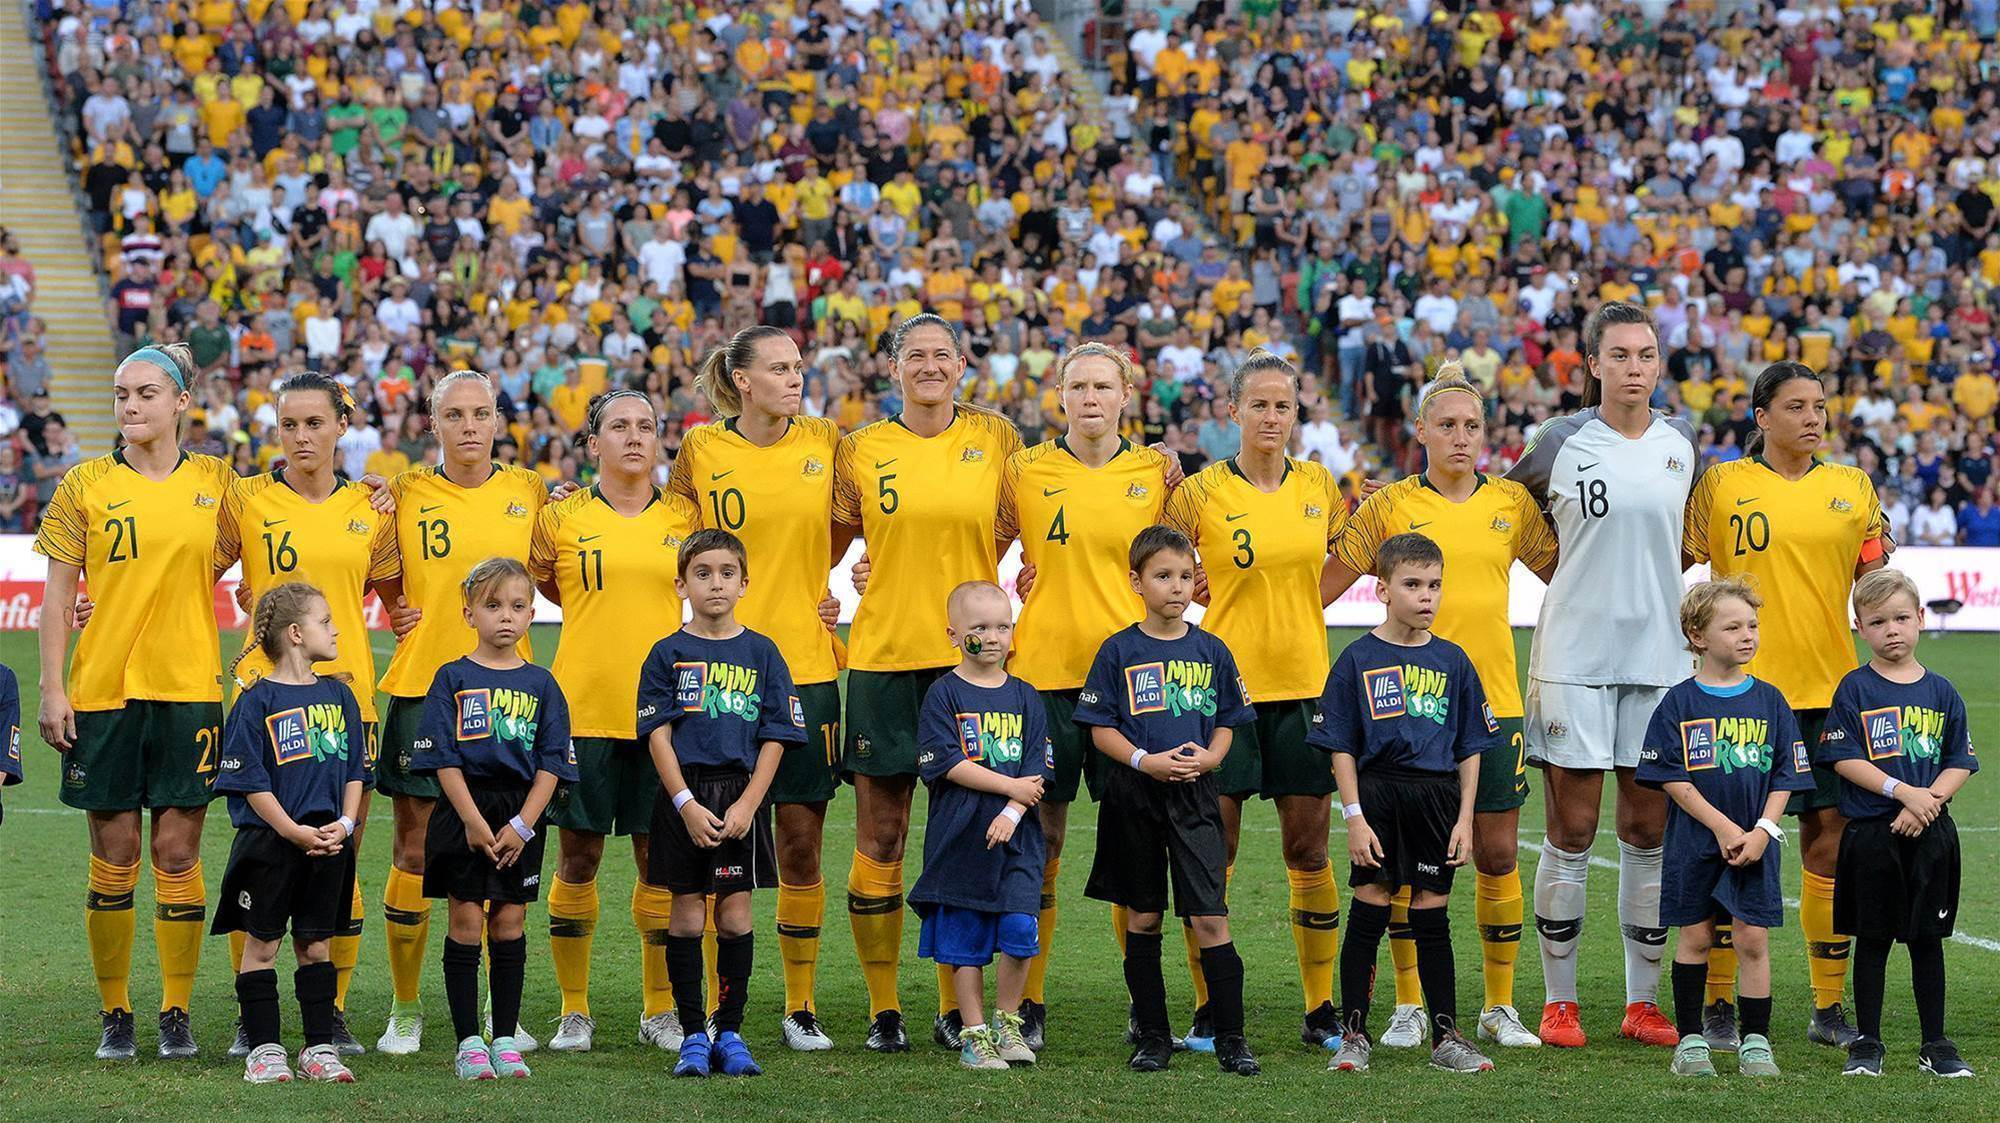 Match preview: Matildas v Argentina